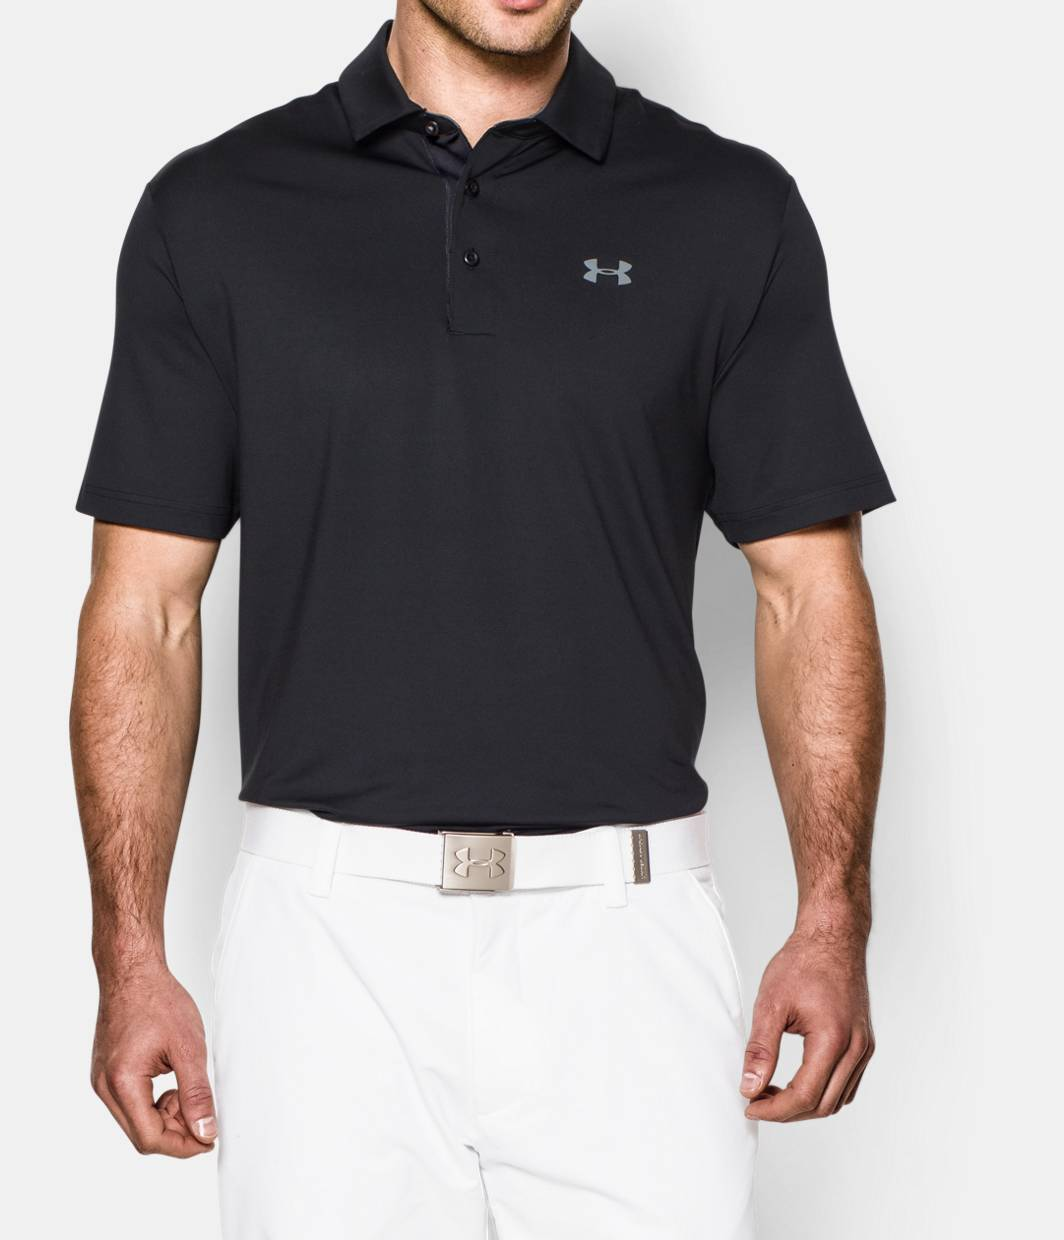 2016 Under Armour Playoff Mens Golf Polo Shirt Nova Teal/Black Small UUZikYU48